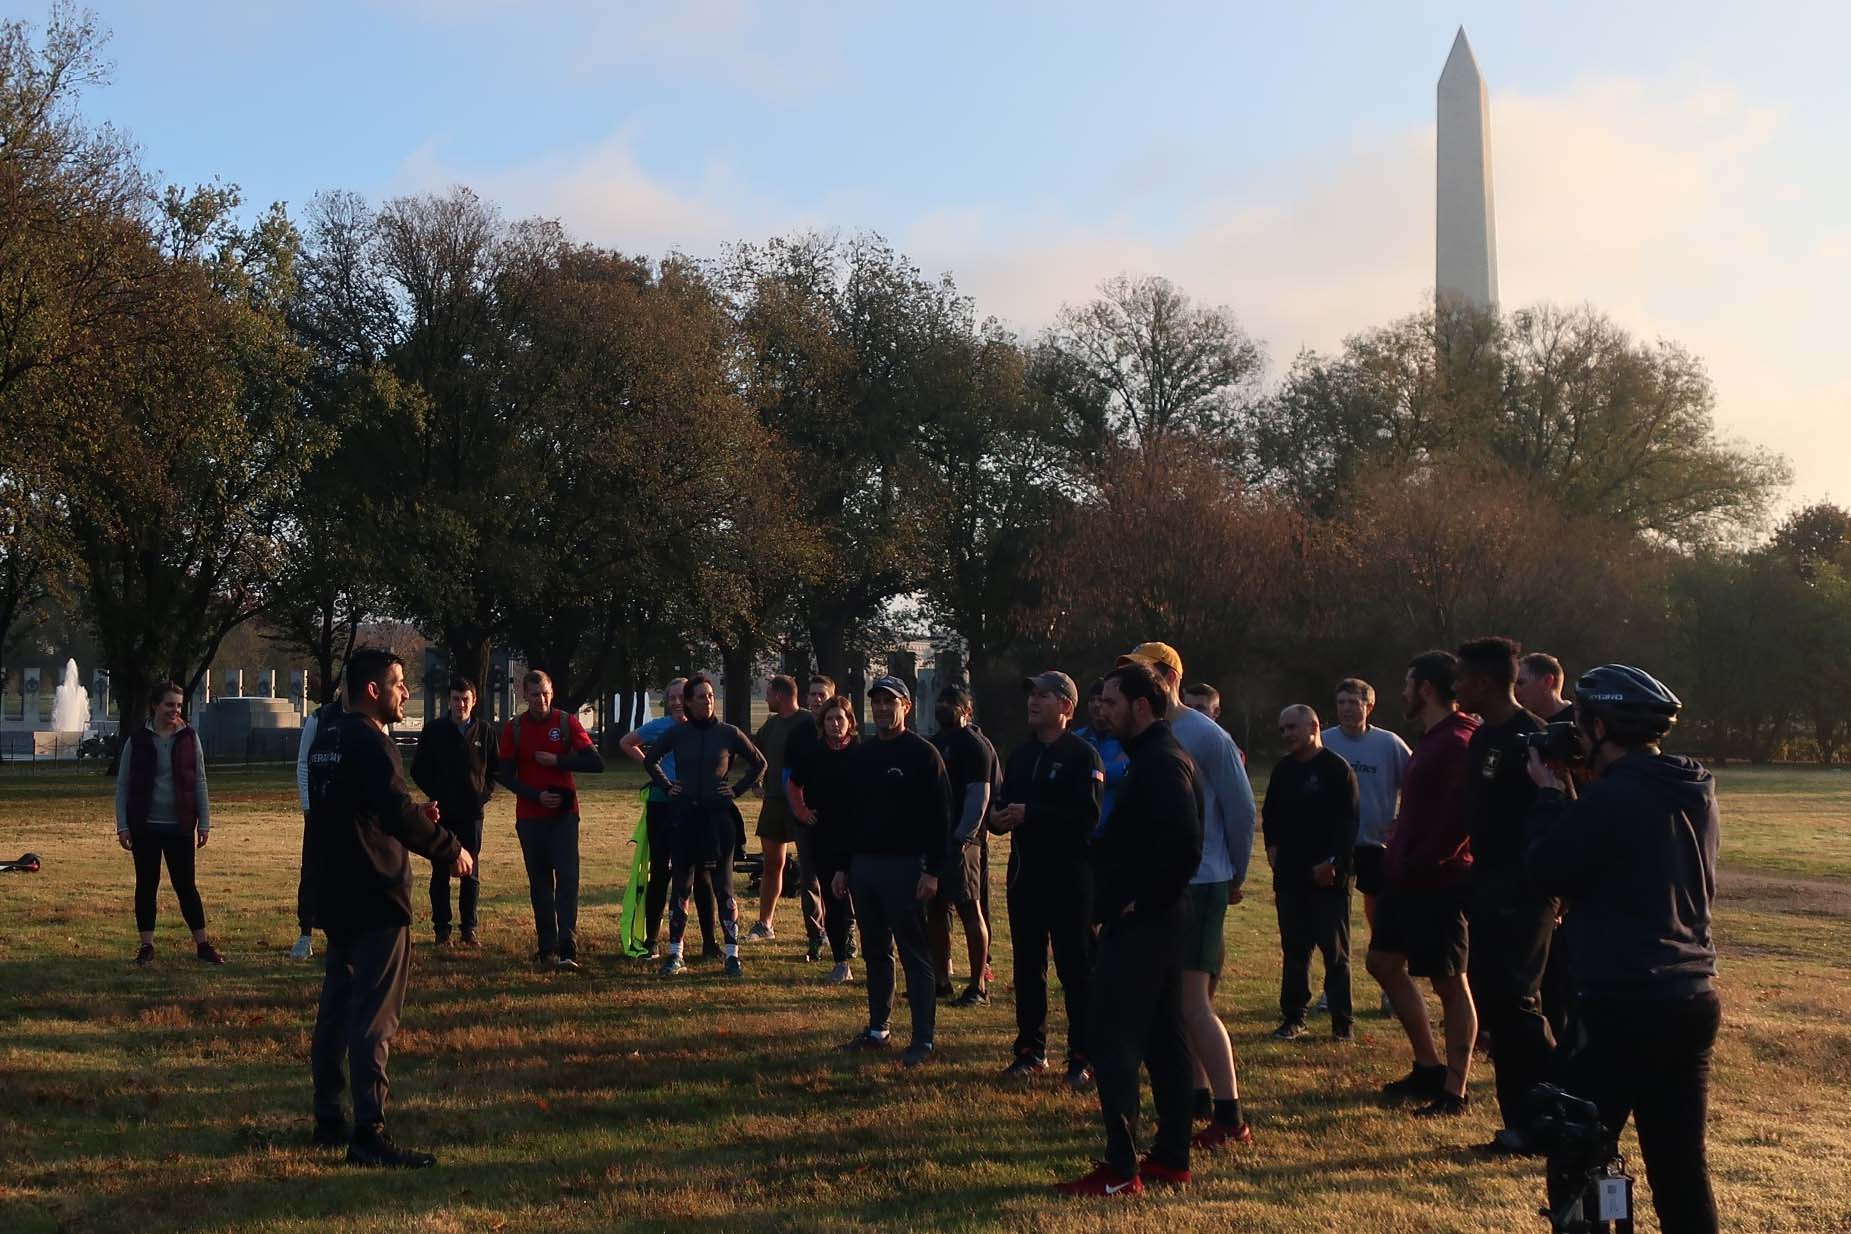 Caption: Michael Rodriguez, left foreground, president of a group that wants to build a 'Global War on Terrorism' memorial, shows the proposed site to several supporters after a Nov. 2019 sunrise run on the National Mall., Credit: Caitlin Kim / Colorado Public Radio